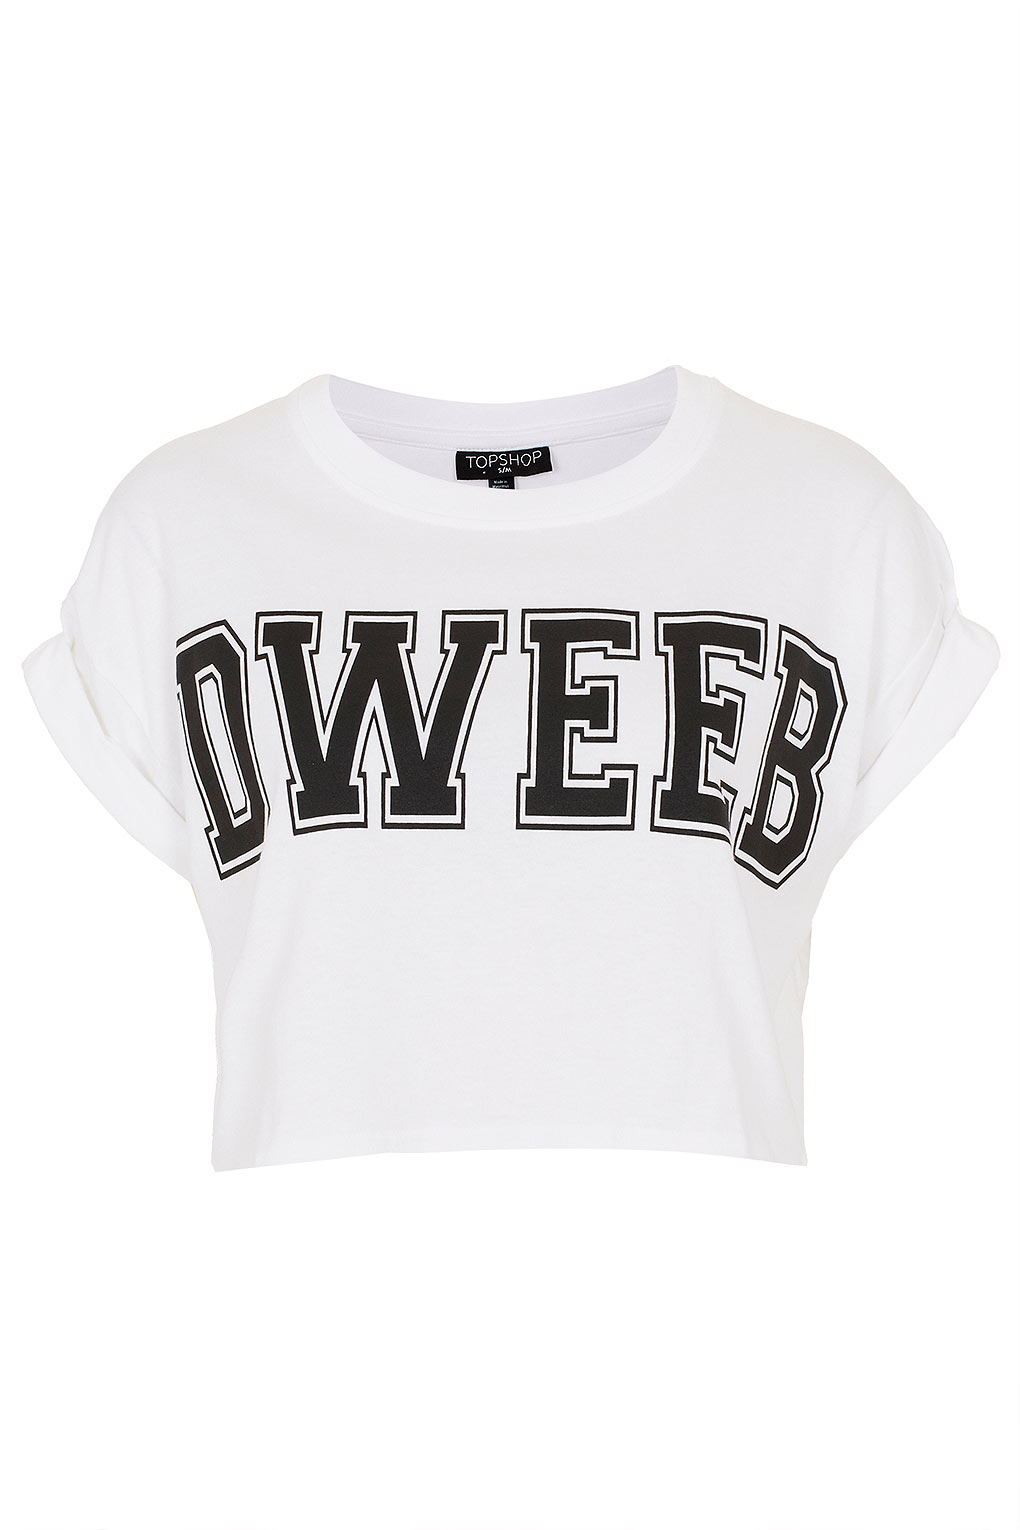 Dweeb Crop Top TopShop